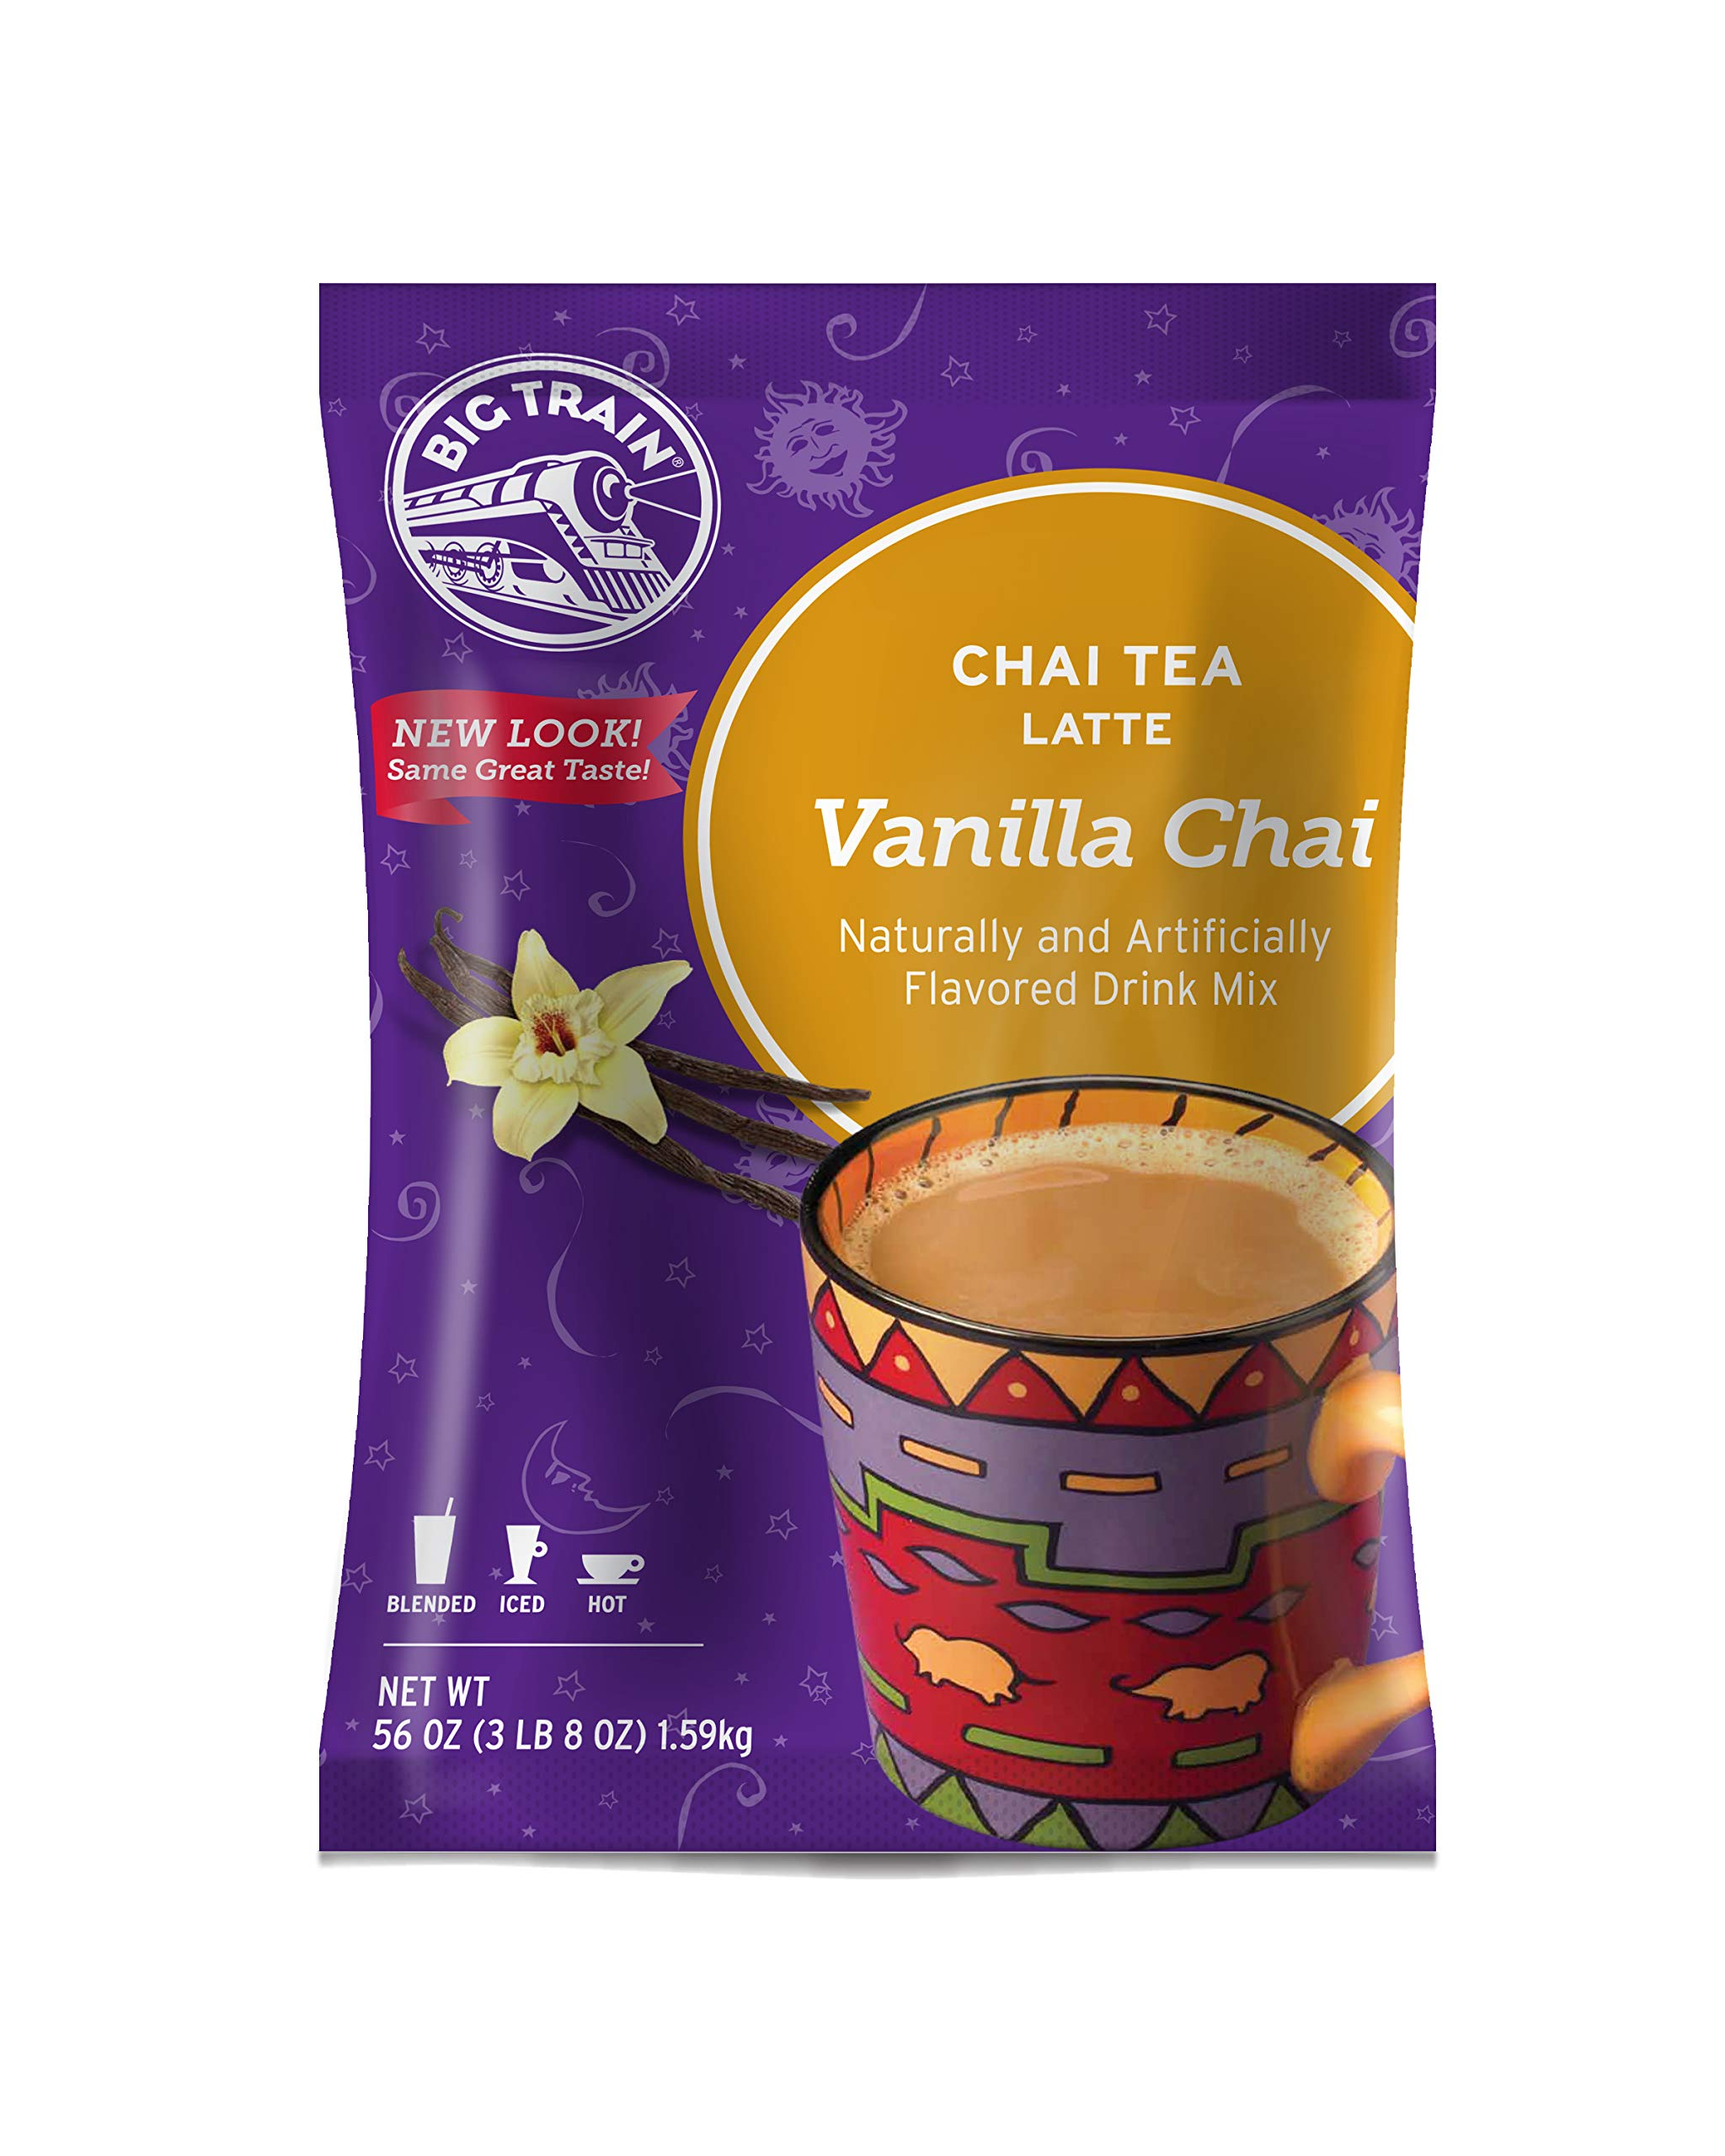 Big Train Chai 3.5 lb Vanilla Chai by Big Train